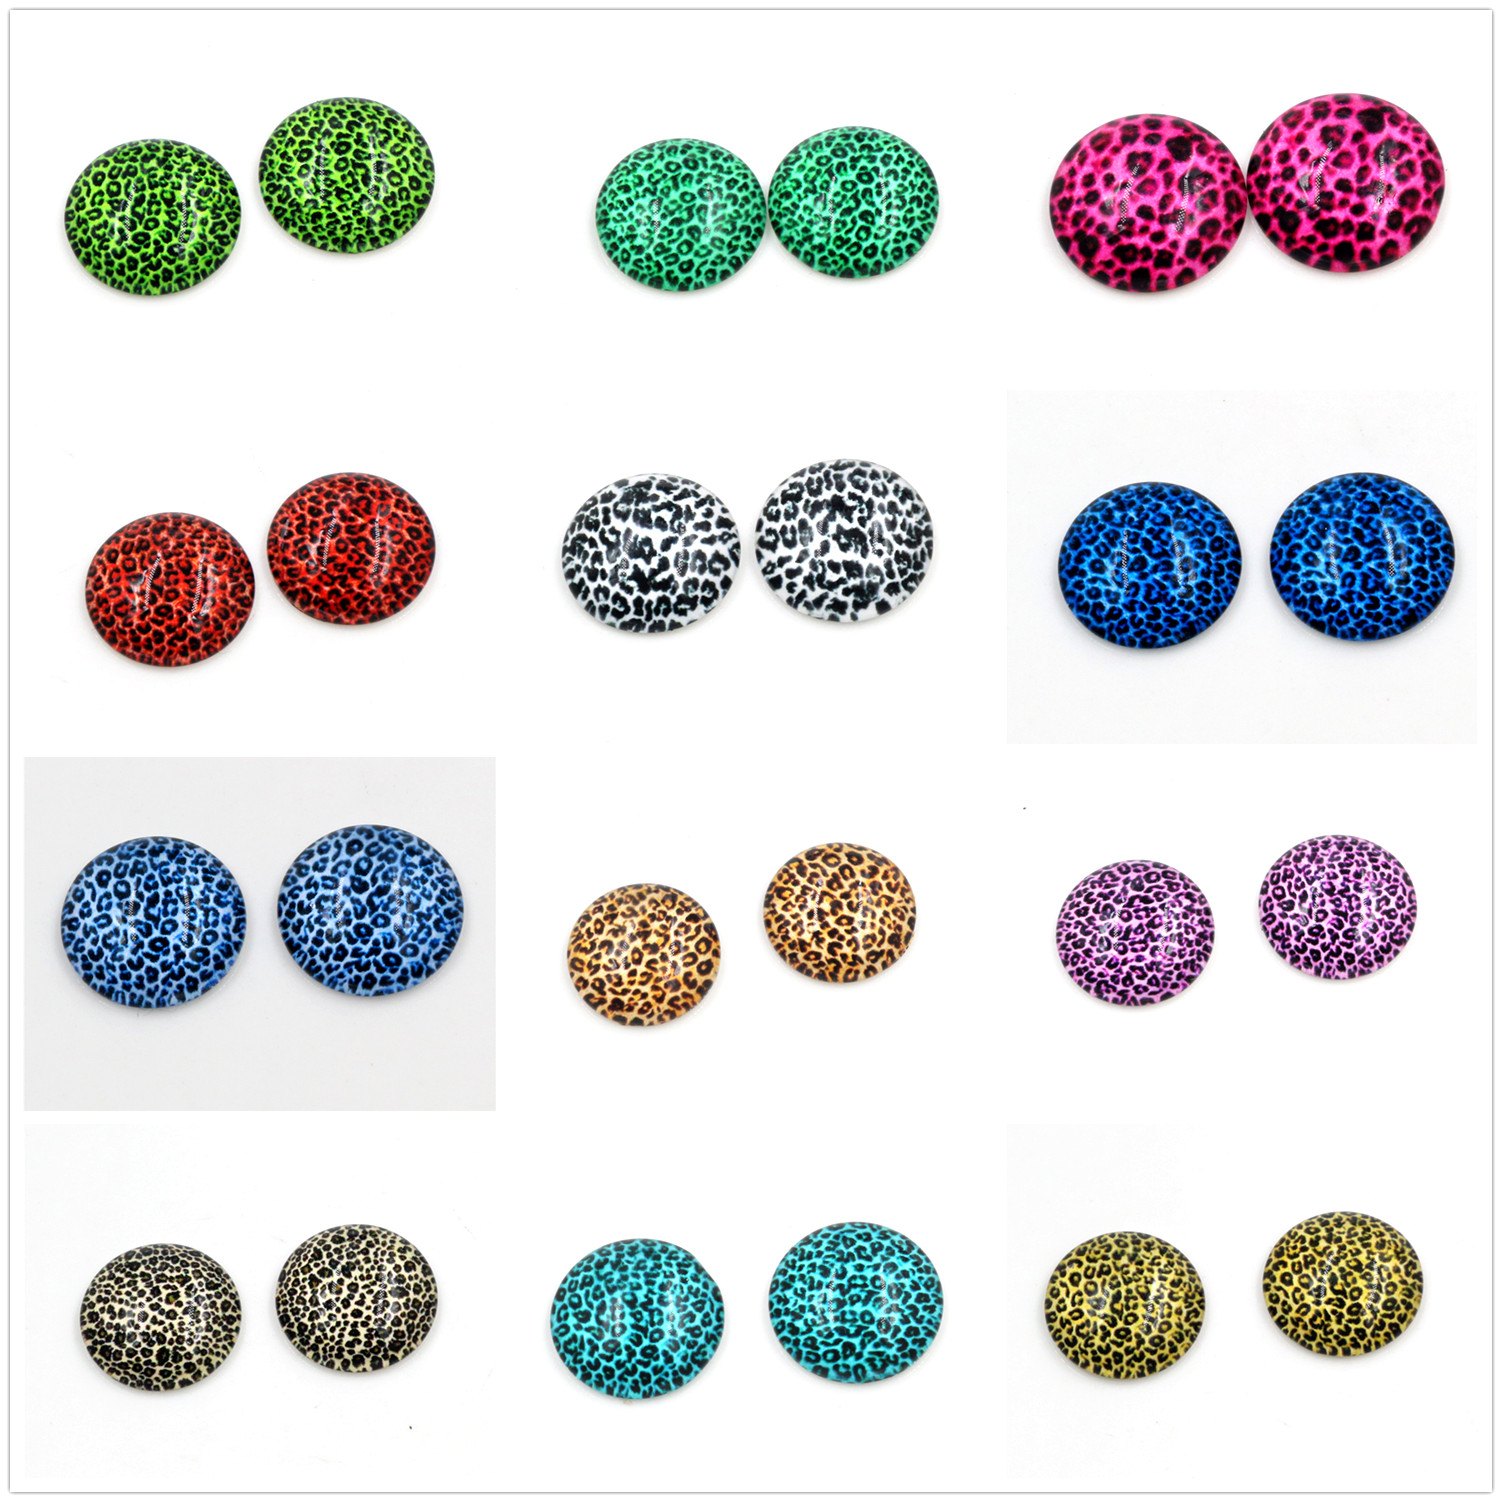 Hot Sale New Fashion 5pcs/Lot 25mm Handmade Photo Glass Cabochons Pattern Domed Jewelry Accessories Supplies